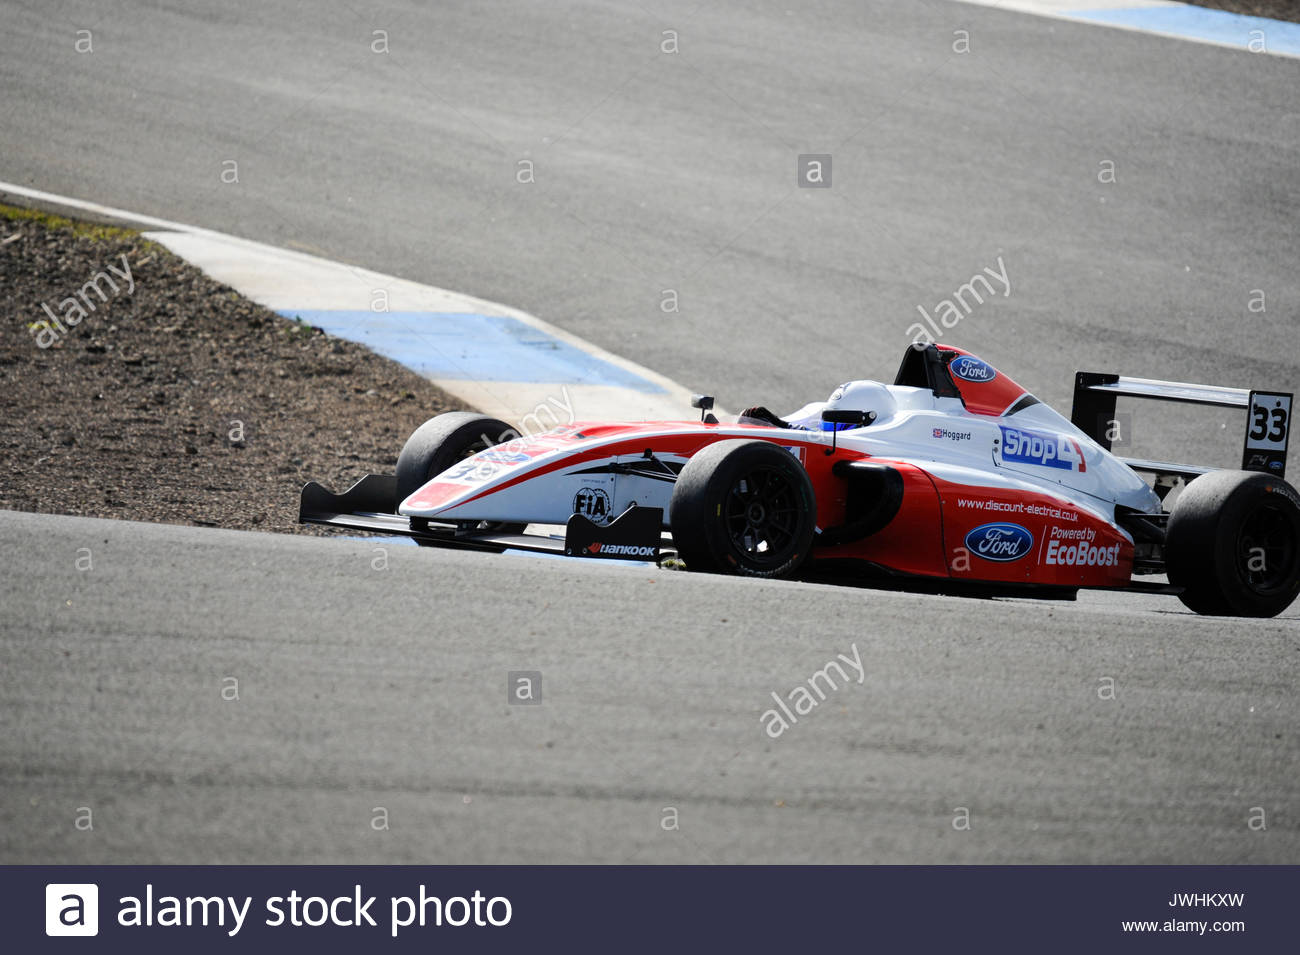 Dunfermline, UK. 13th Aug, 2017. (33) Jonathan Hoggard at the Hairpin in a Formula 4 British Championship race during the Dunlop MSA British Touring Car Championship seventh round at Knockhill Race Circuit. Credit: Roger Gaisford/Alamy Live News - Stock Image